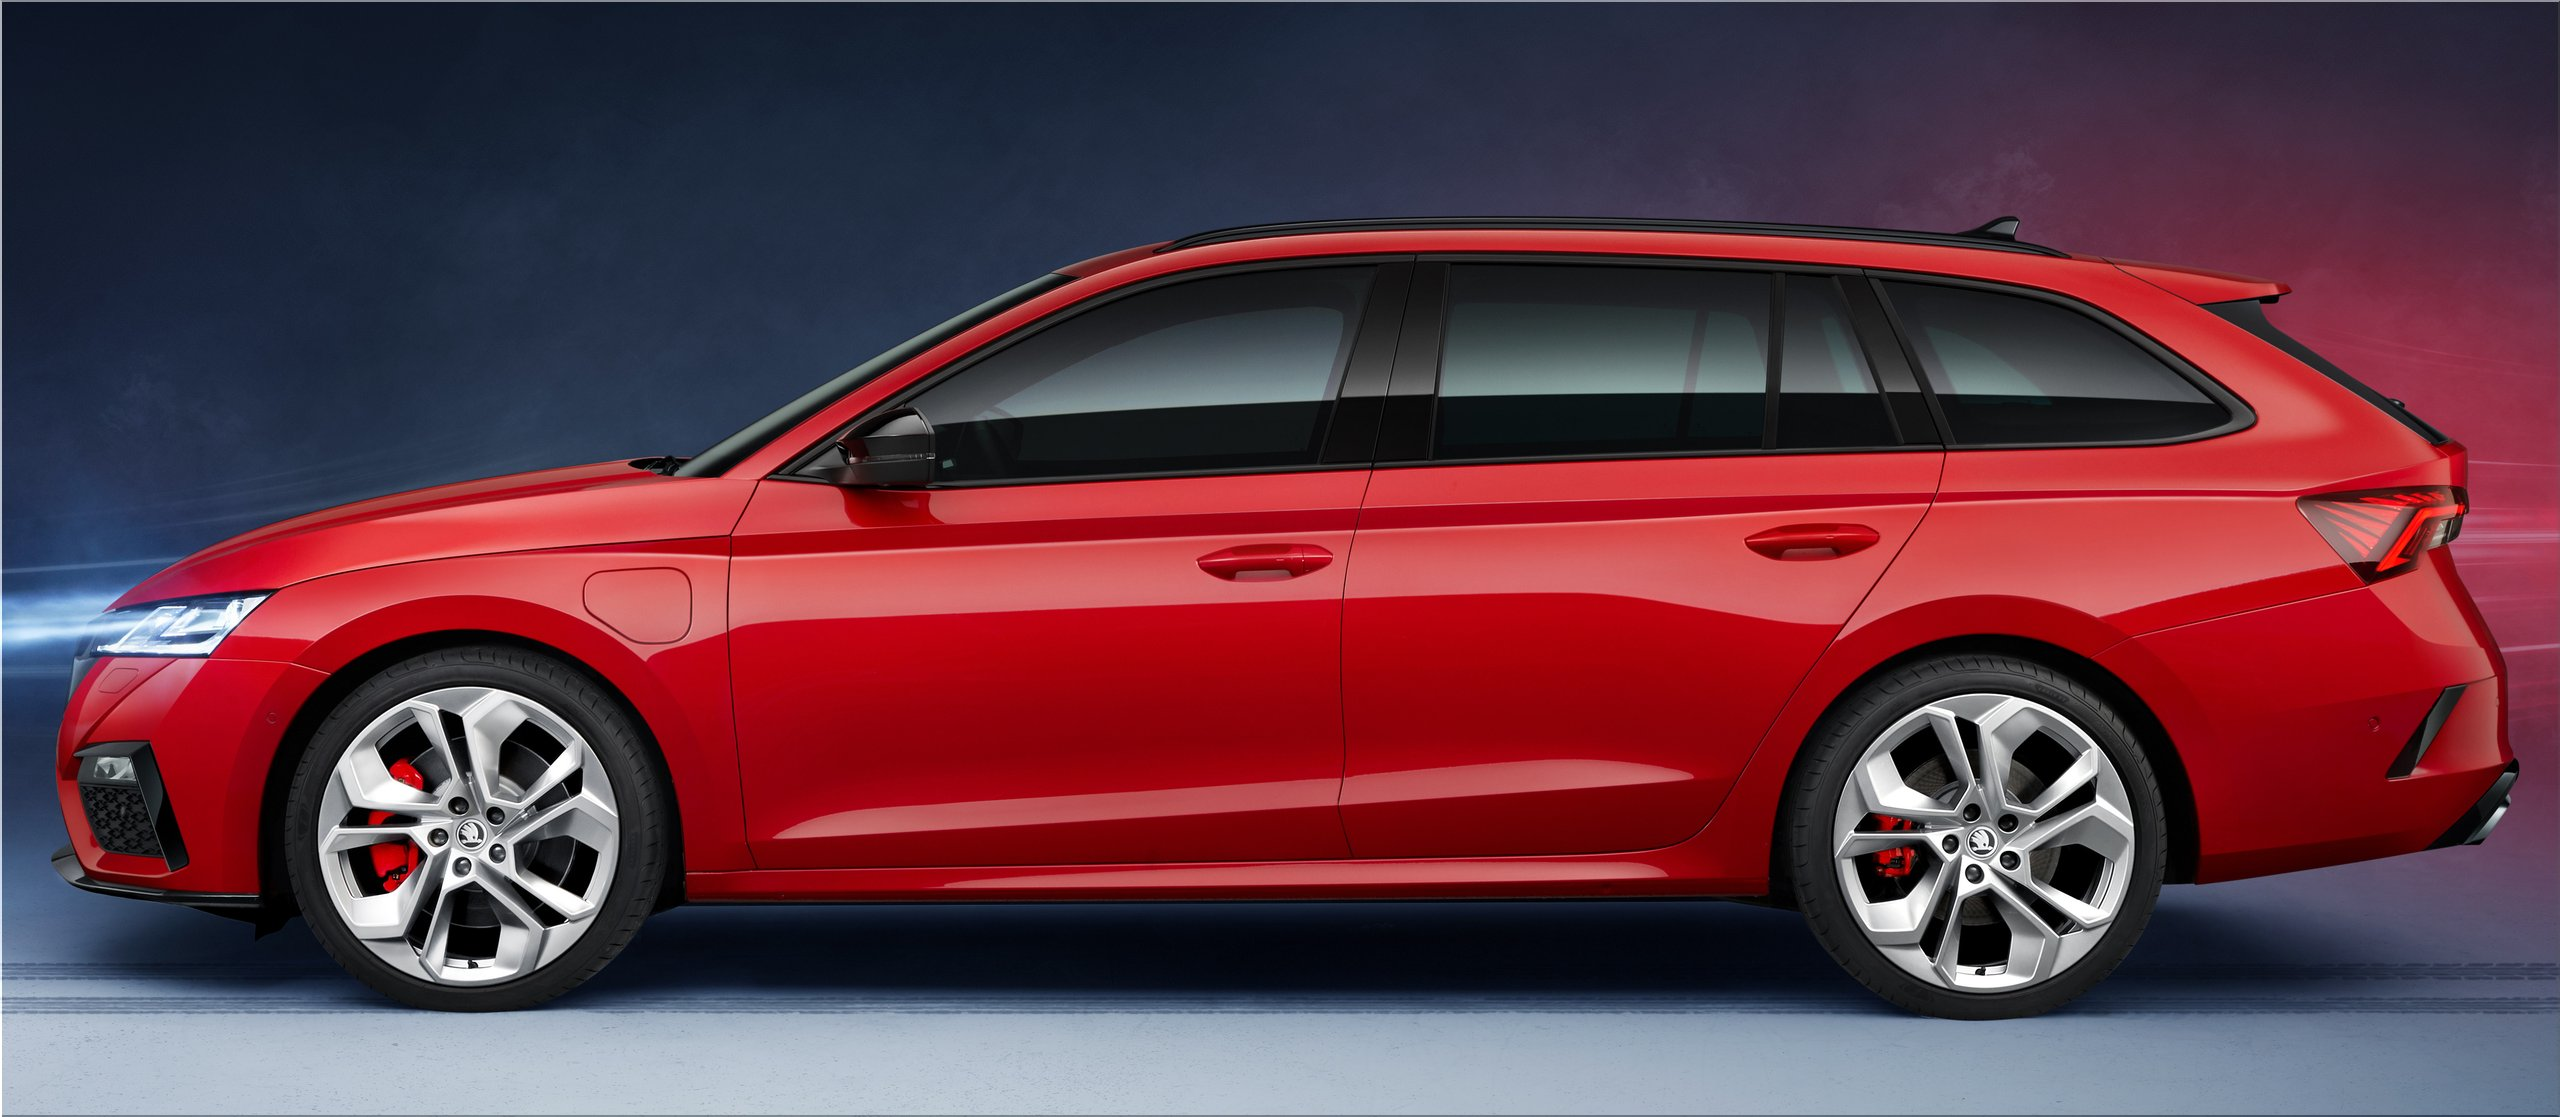 The New Skoda Octavia Rs Iv Hybrid Will Be Available From September Car Division